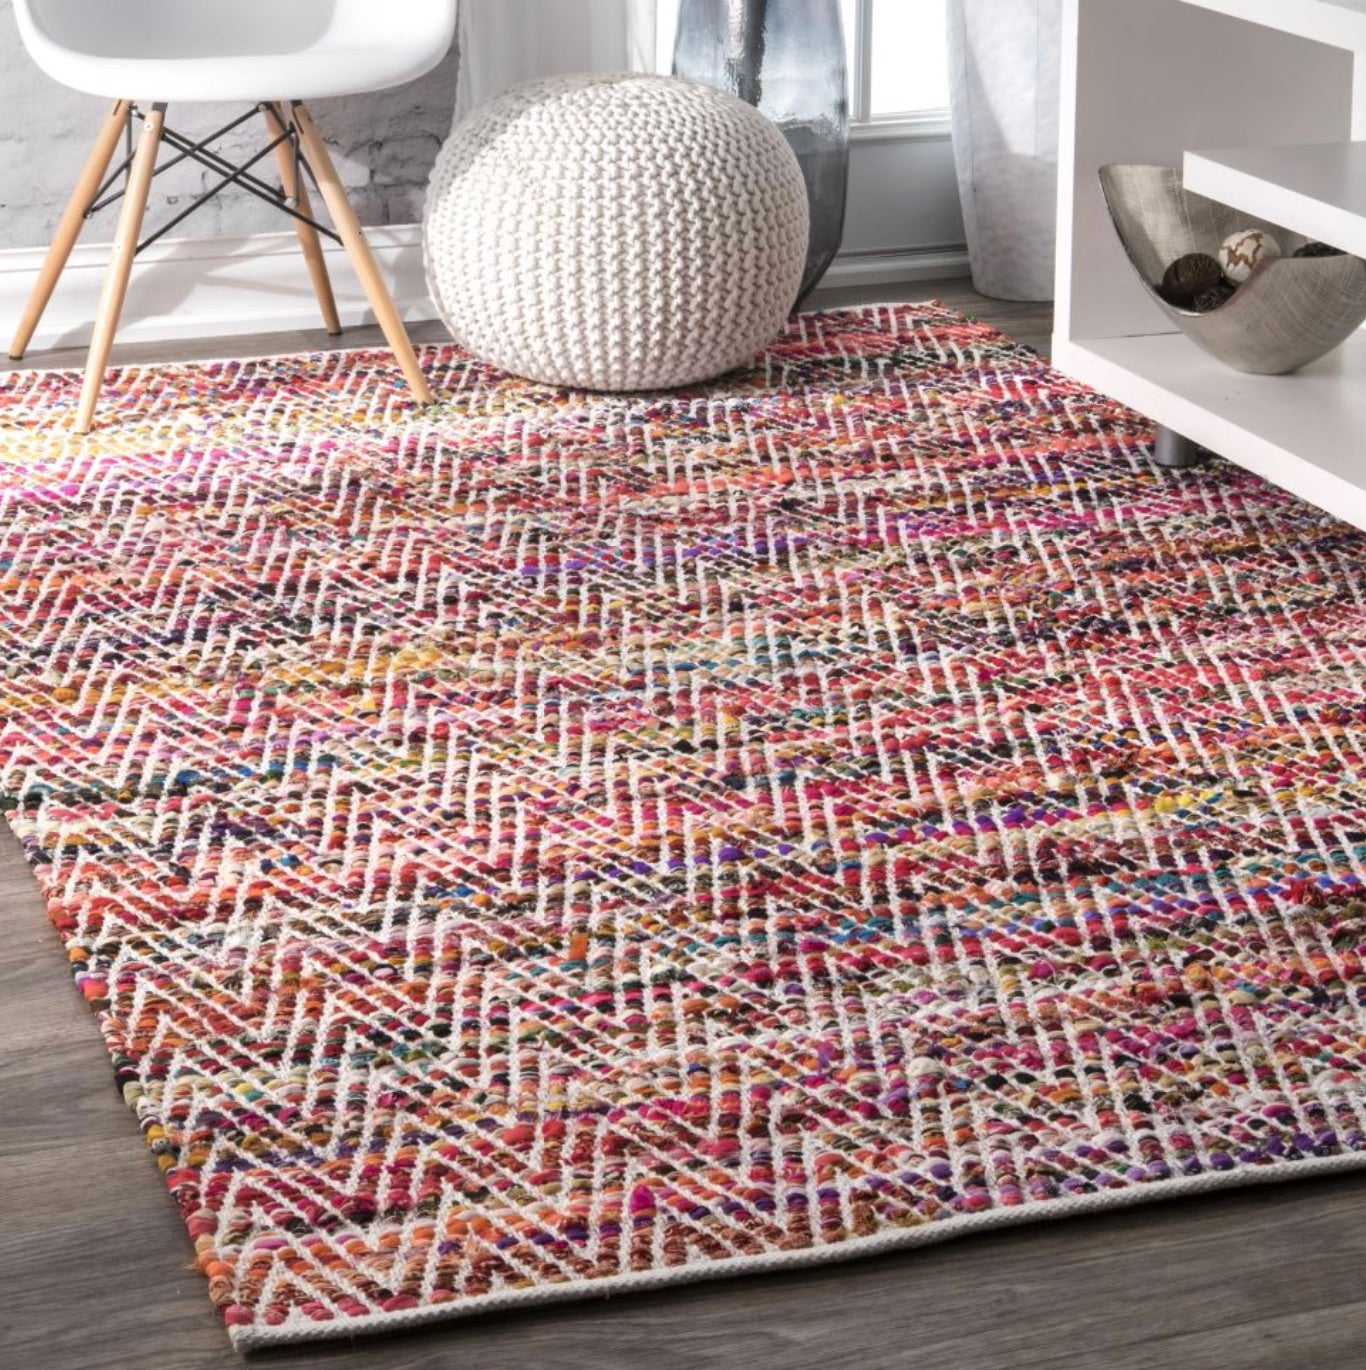 Magenta Hand Woven Candy Striped Chevron Area Rug